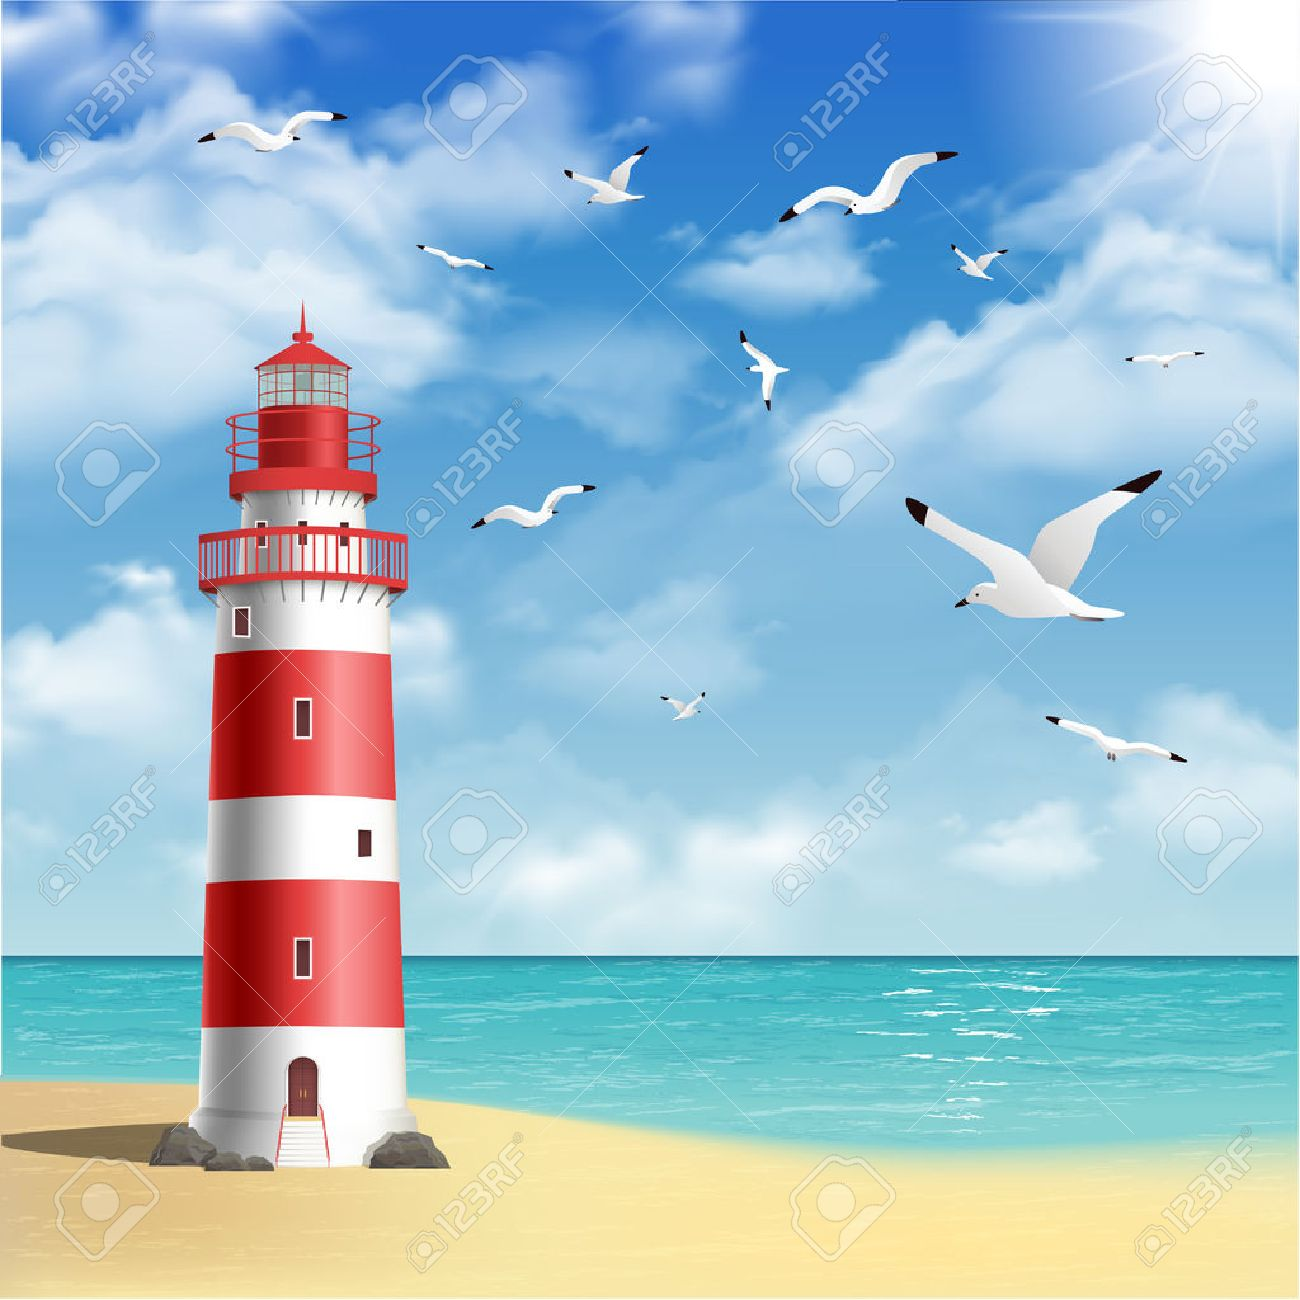 Lighthouse Background Realistic Lighthouse On The Beach With Seagulls And Ocean On